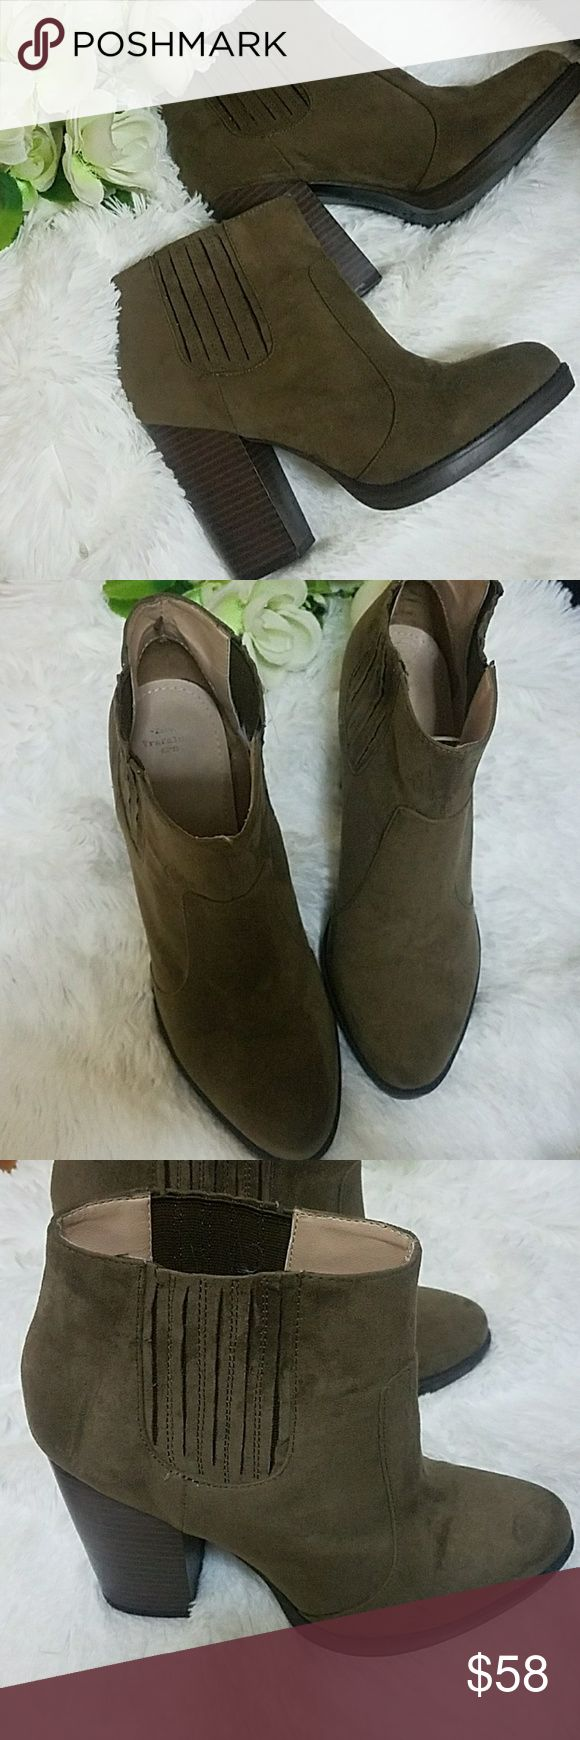 ZARA AW' 13 BOOTIES SIZE 41 FITS A SIZE 10 In good conditions 4.5 heels BROWN MINK COLOR Zara Shoes Ankle Boots & Booties